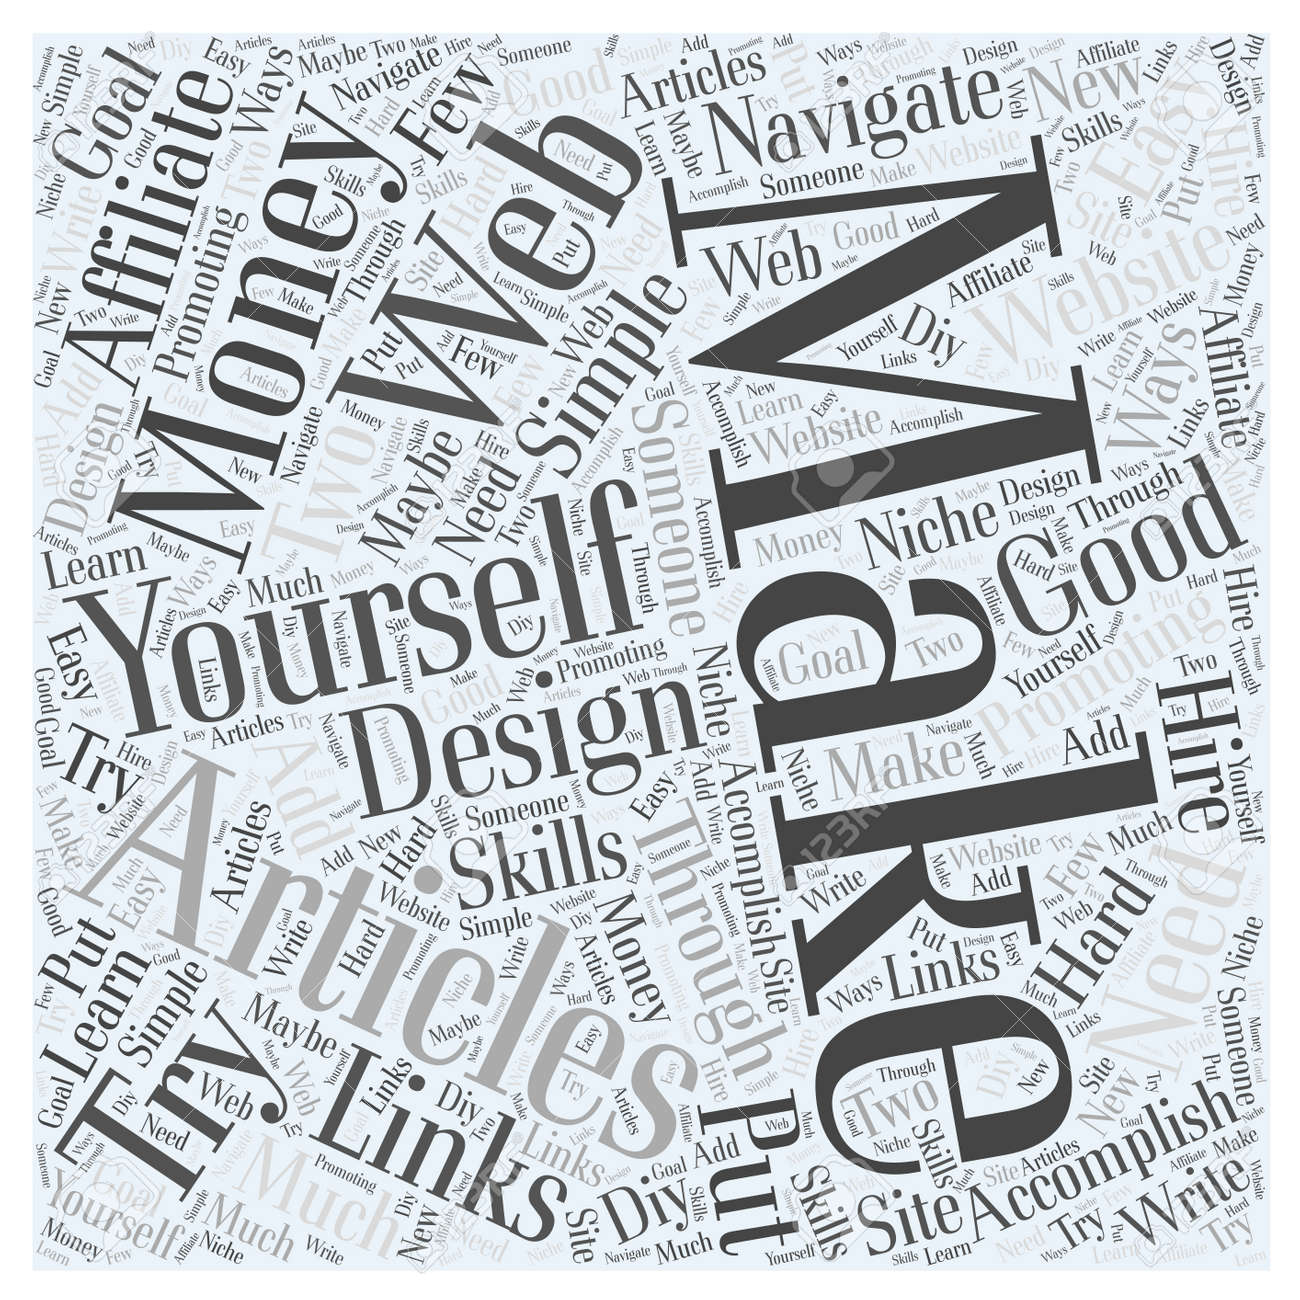 Making money with articles do it yourself web design word cloud making money with articles do it yourself web design word cloud concept stock vector 73564853 solutioingenieria Choice Image